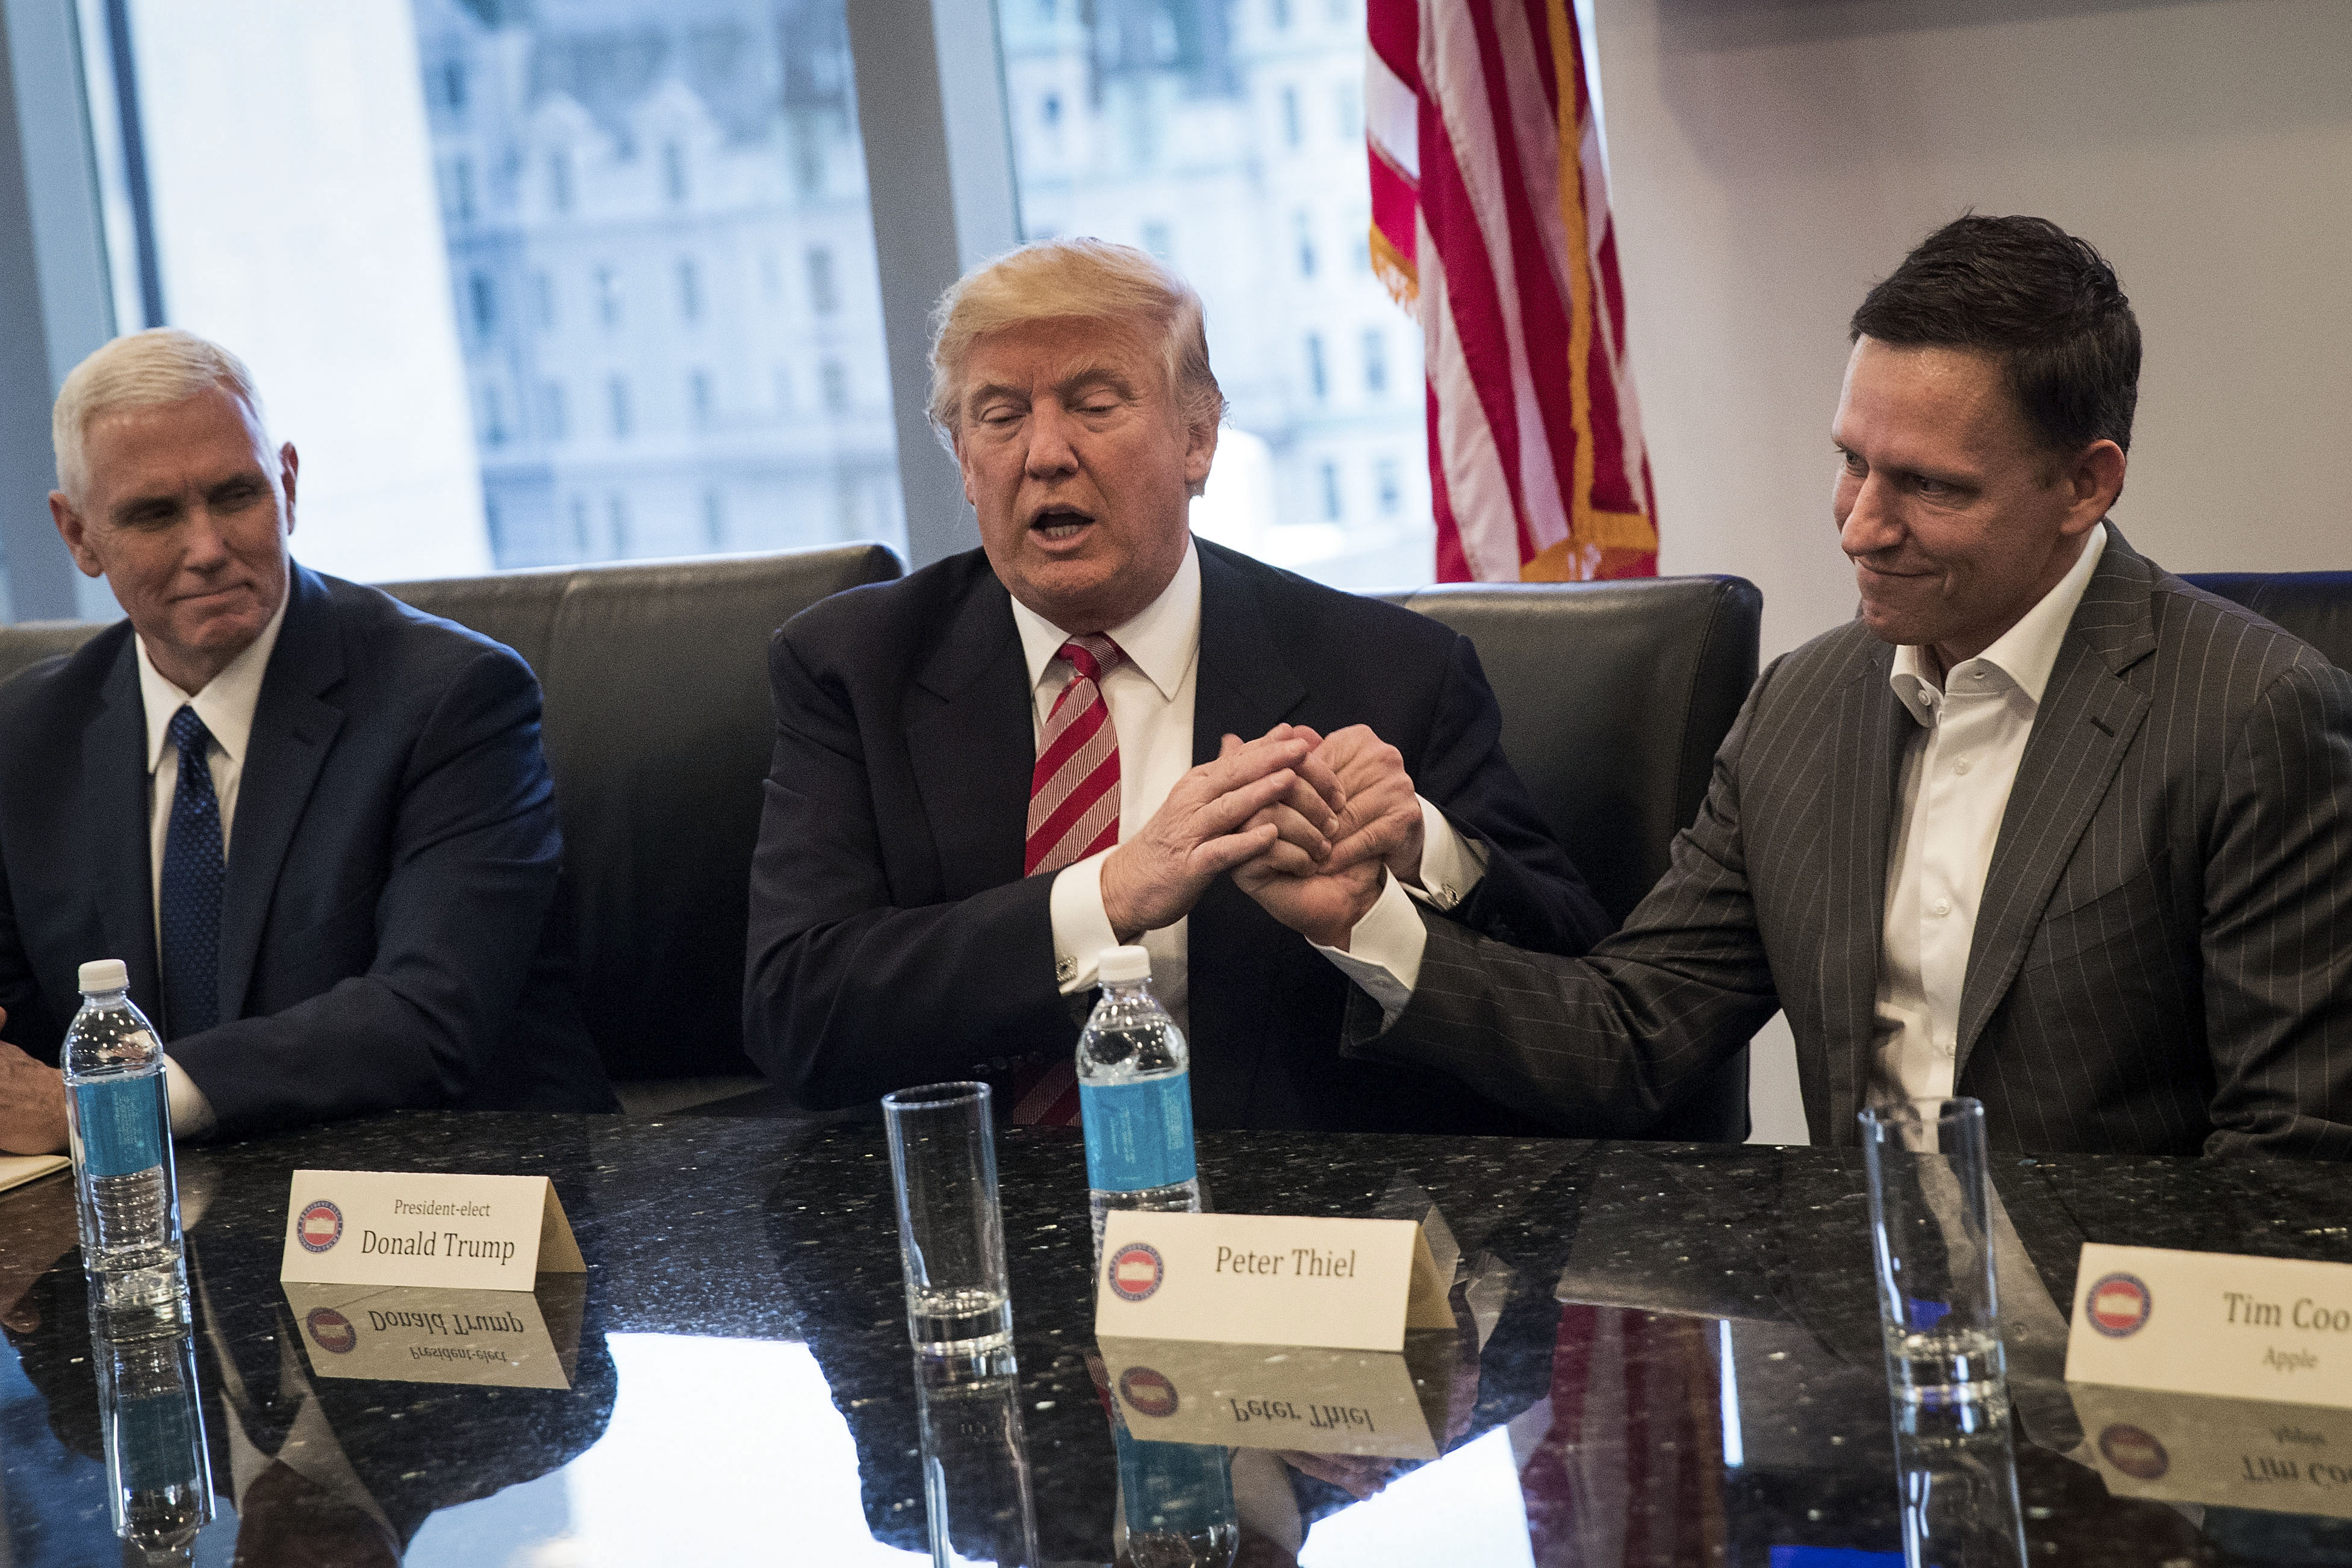 Peter Thiel's investment in Donald Trump doesn't seem to be paying off